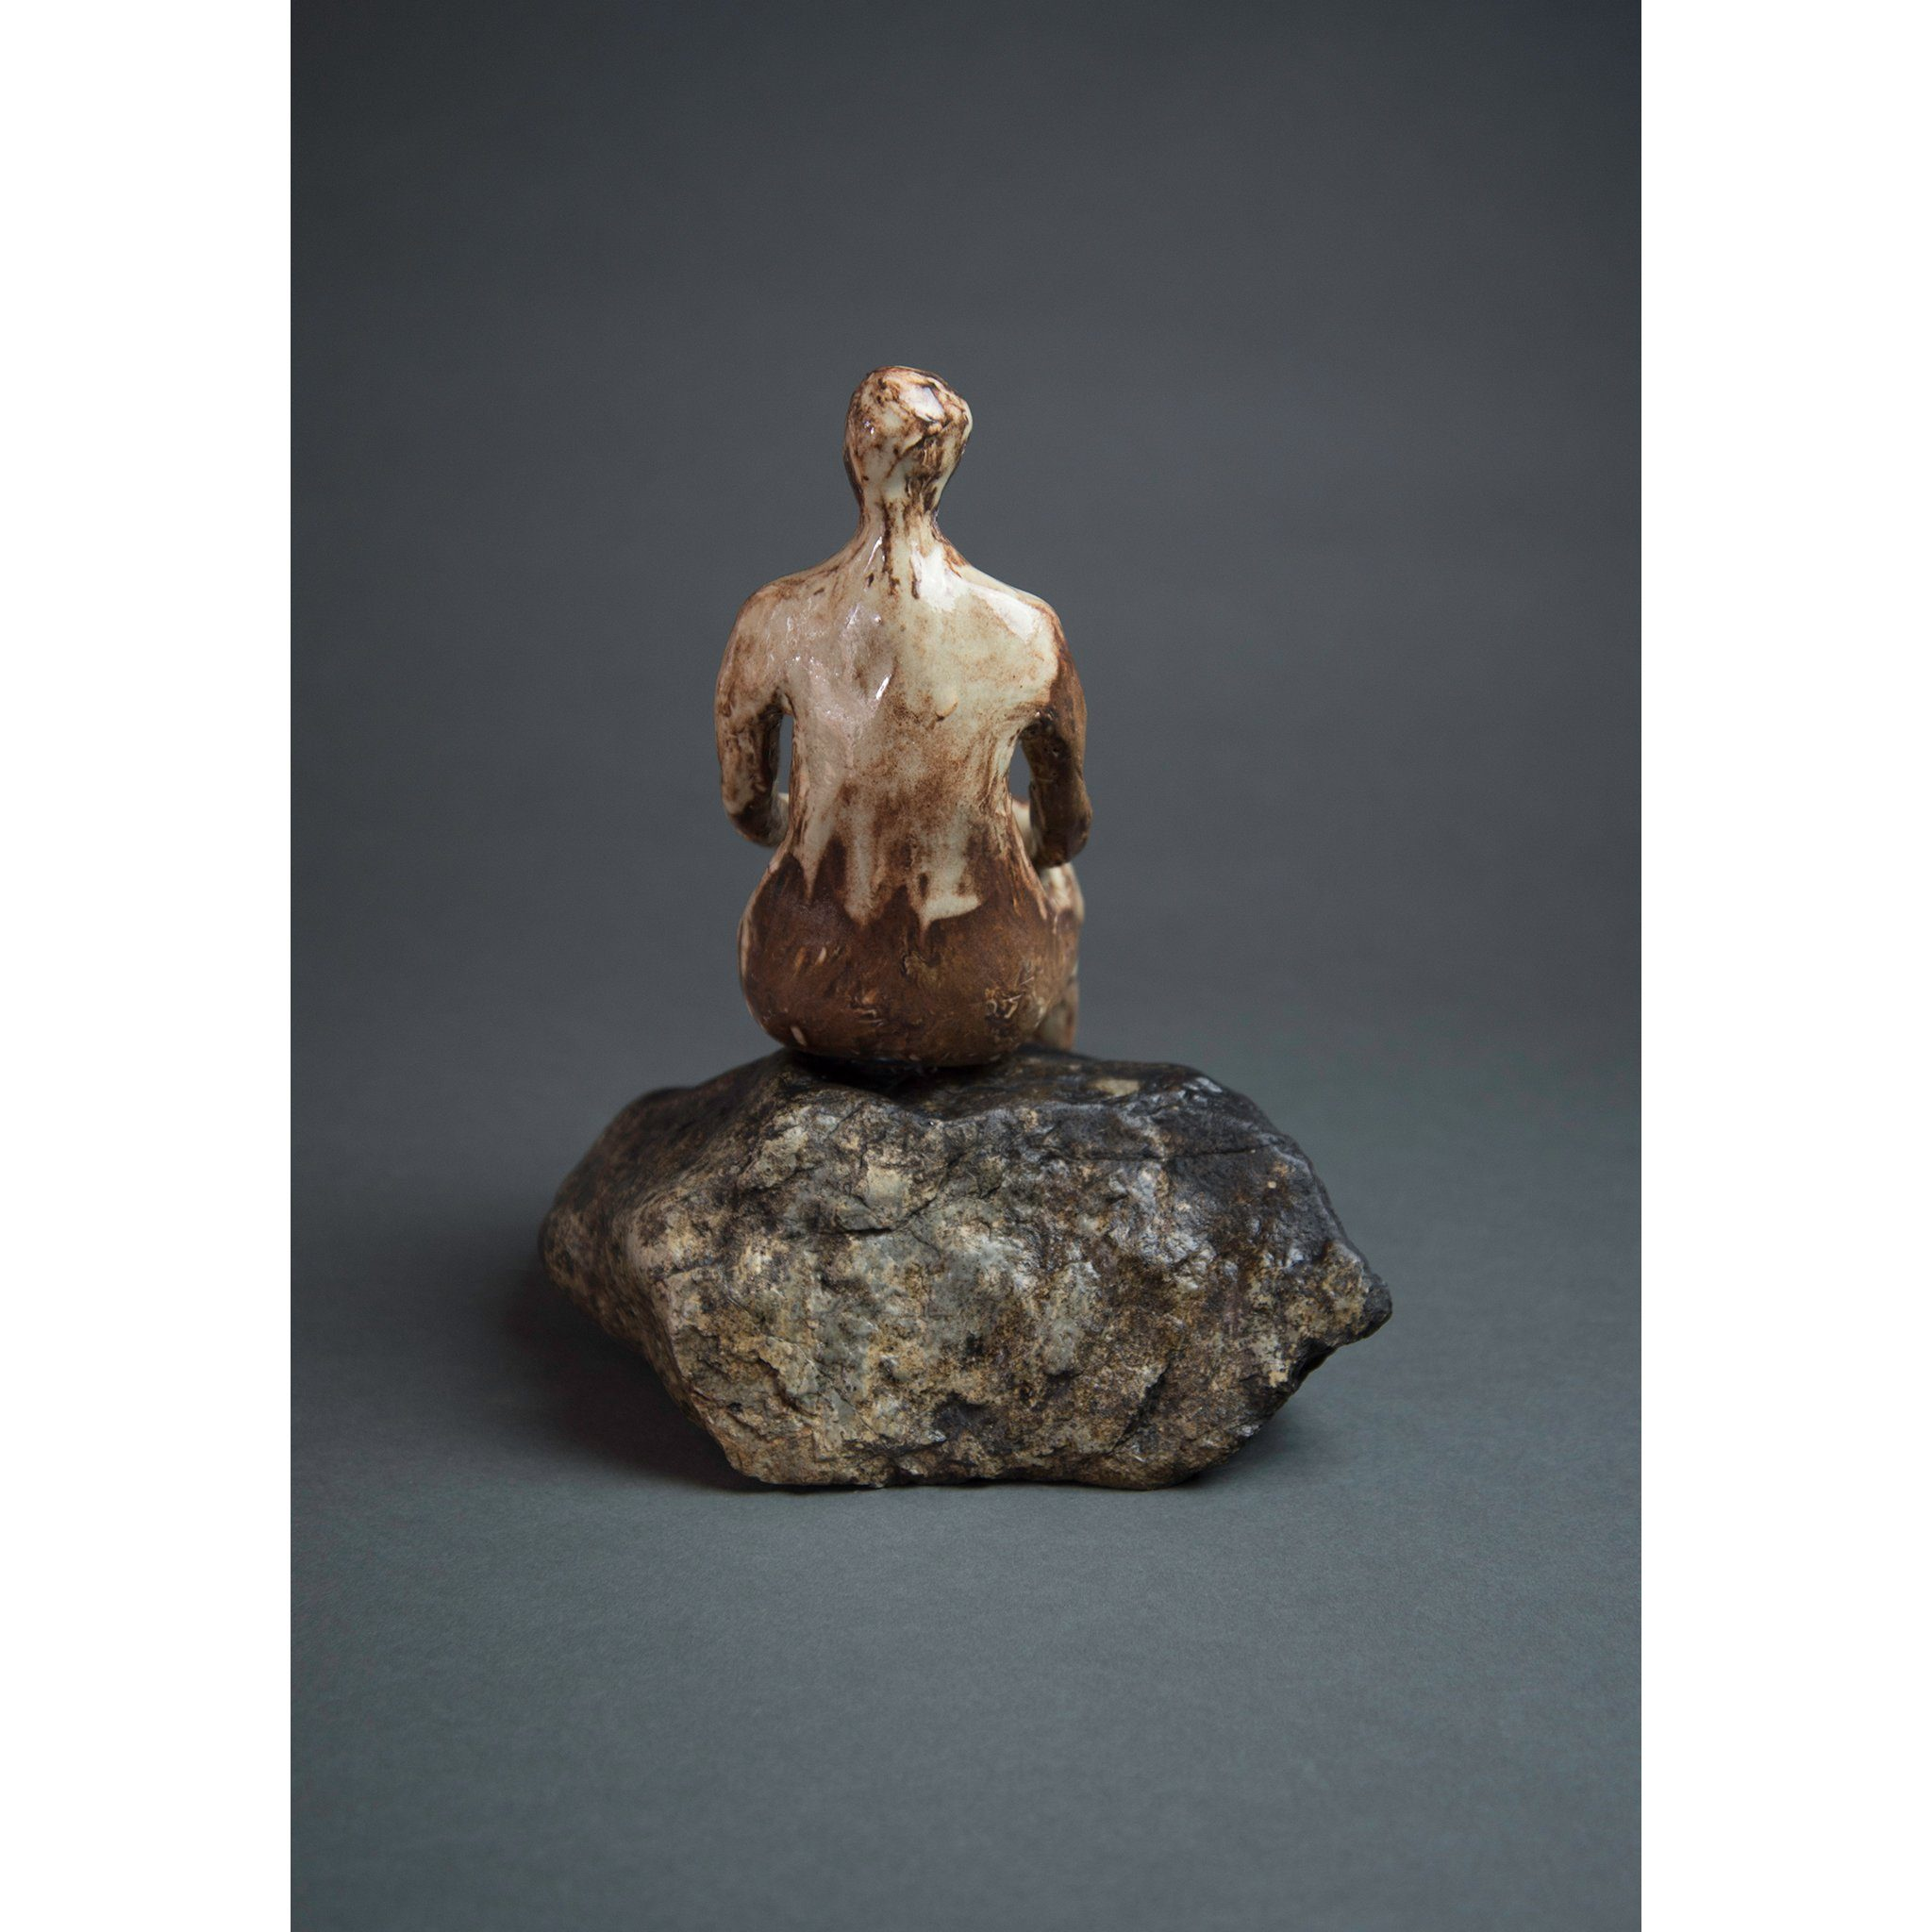 Man on Rock 3  New Mexico Chocolate clay, Shino, glaze and river rock, 10.25x10x5, back.